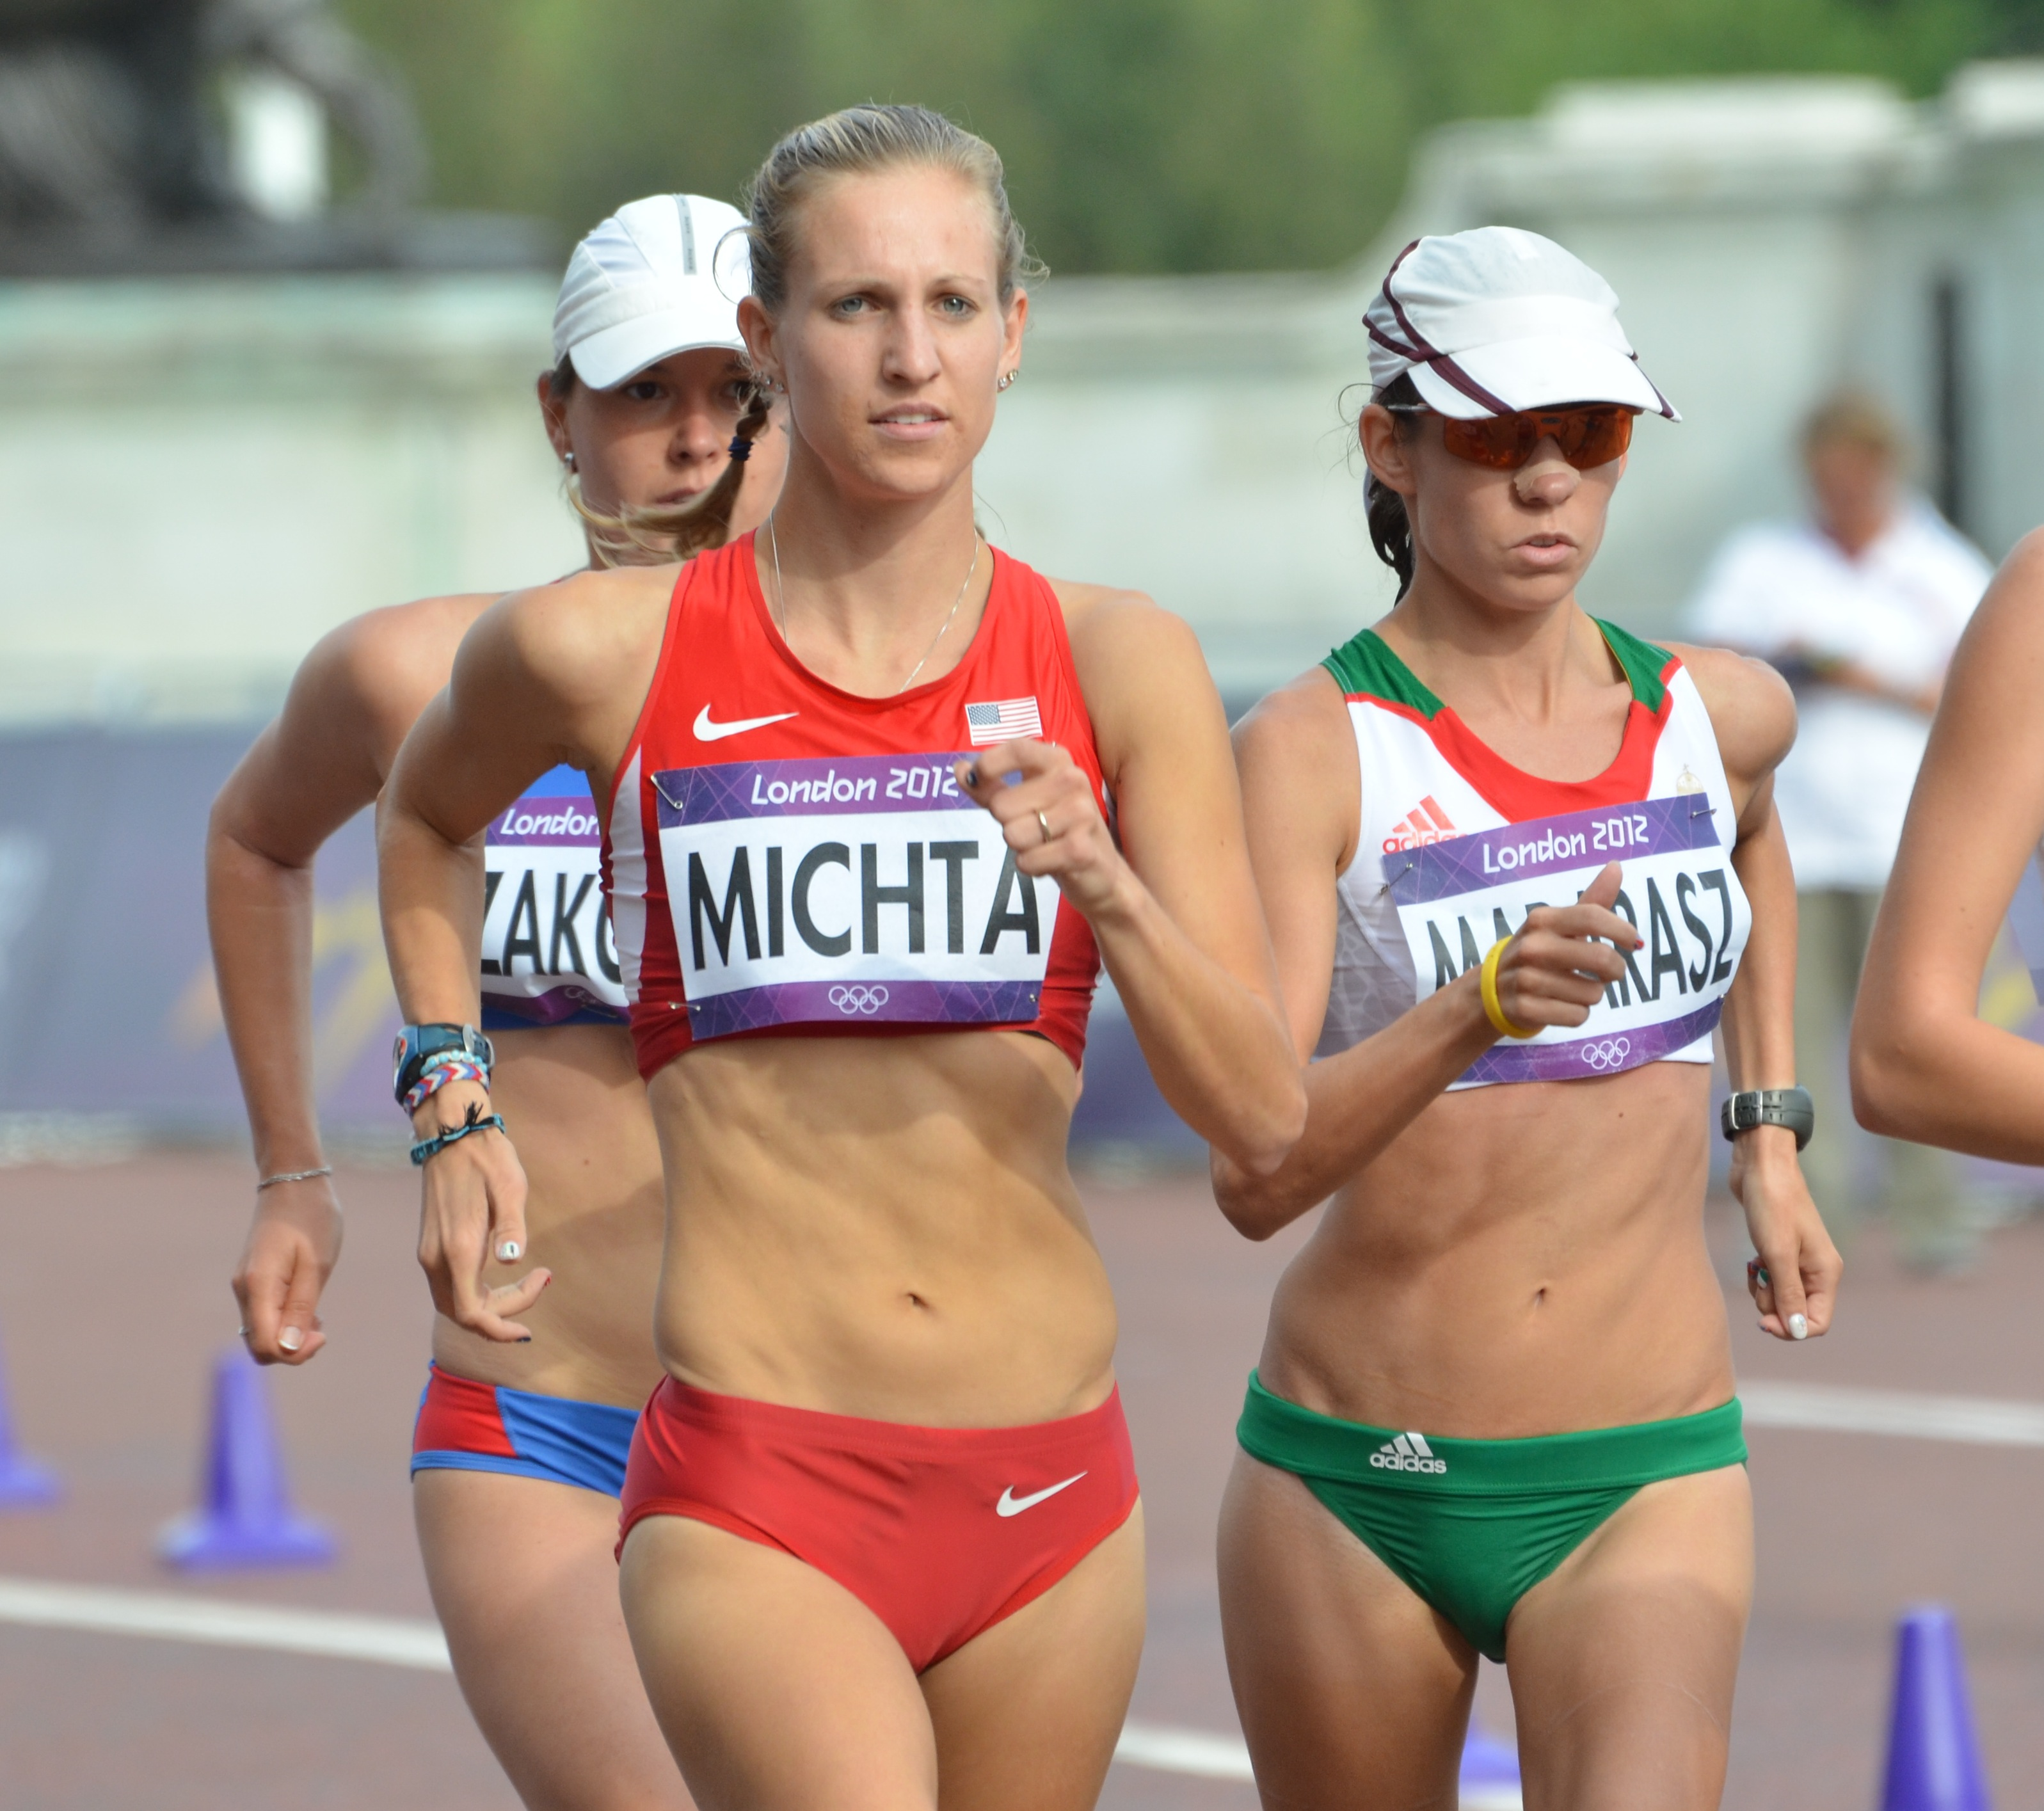 Maria Michta race walk